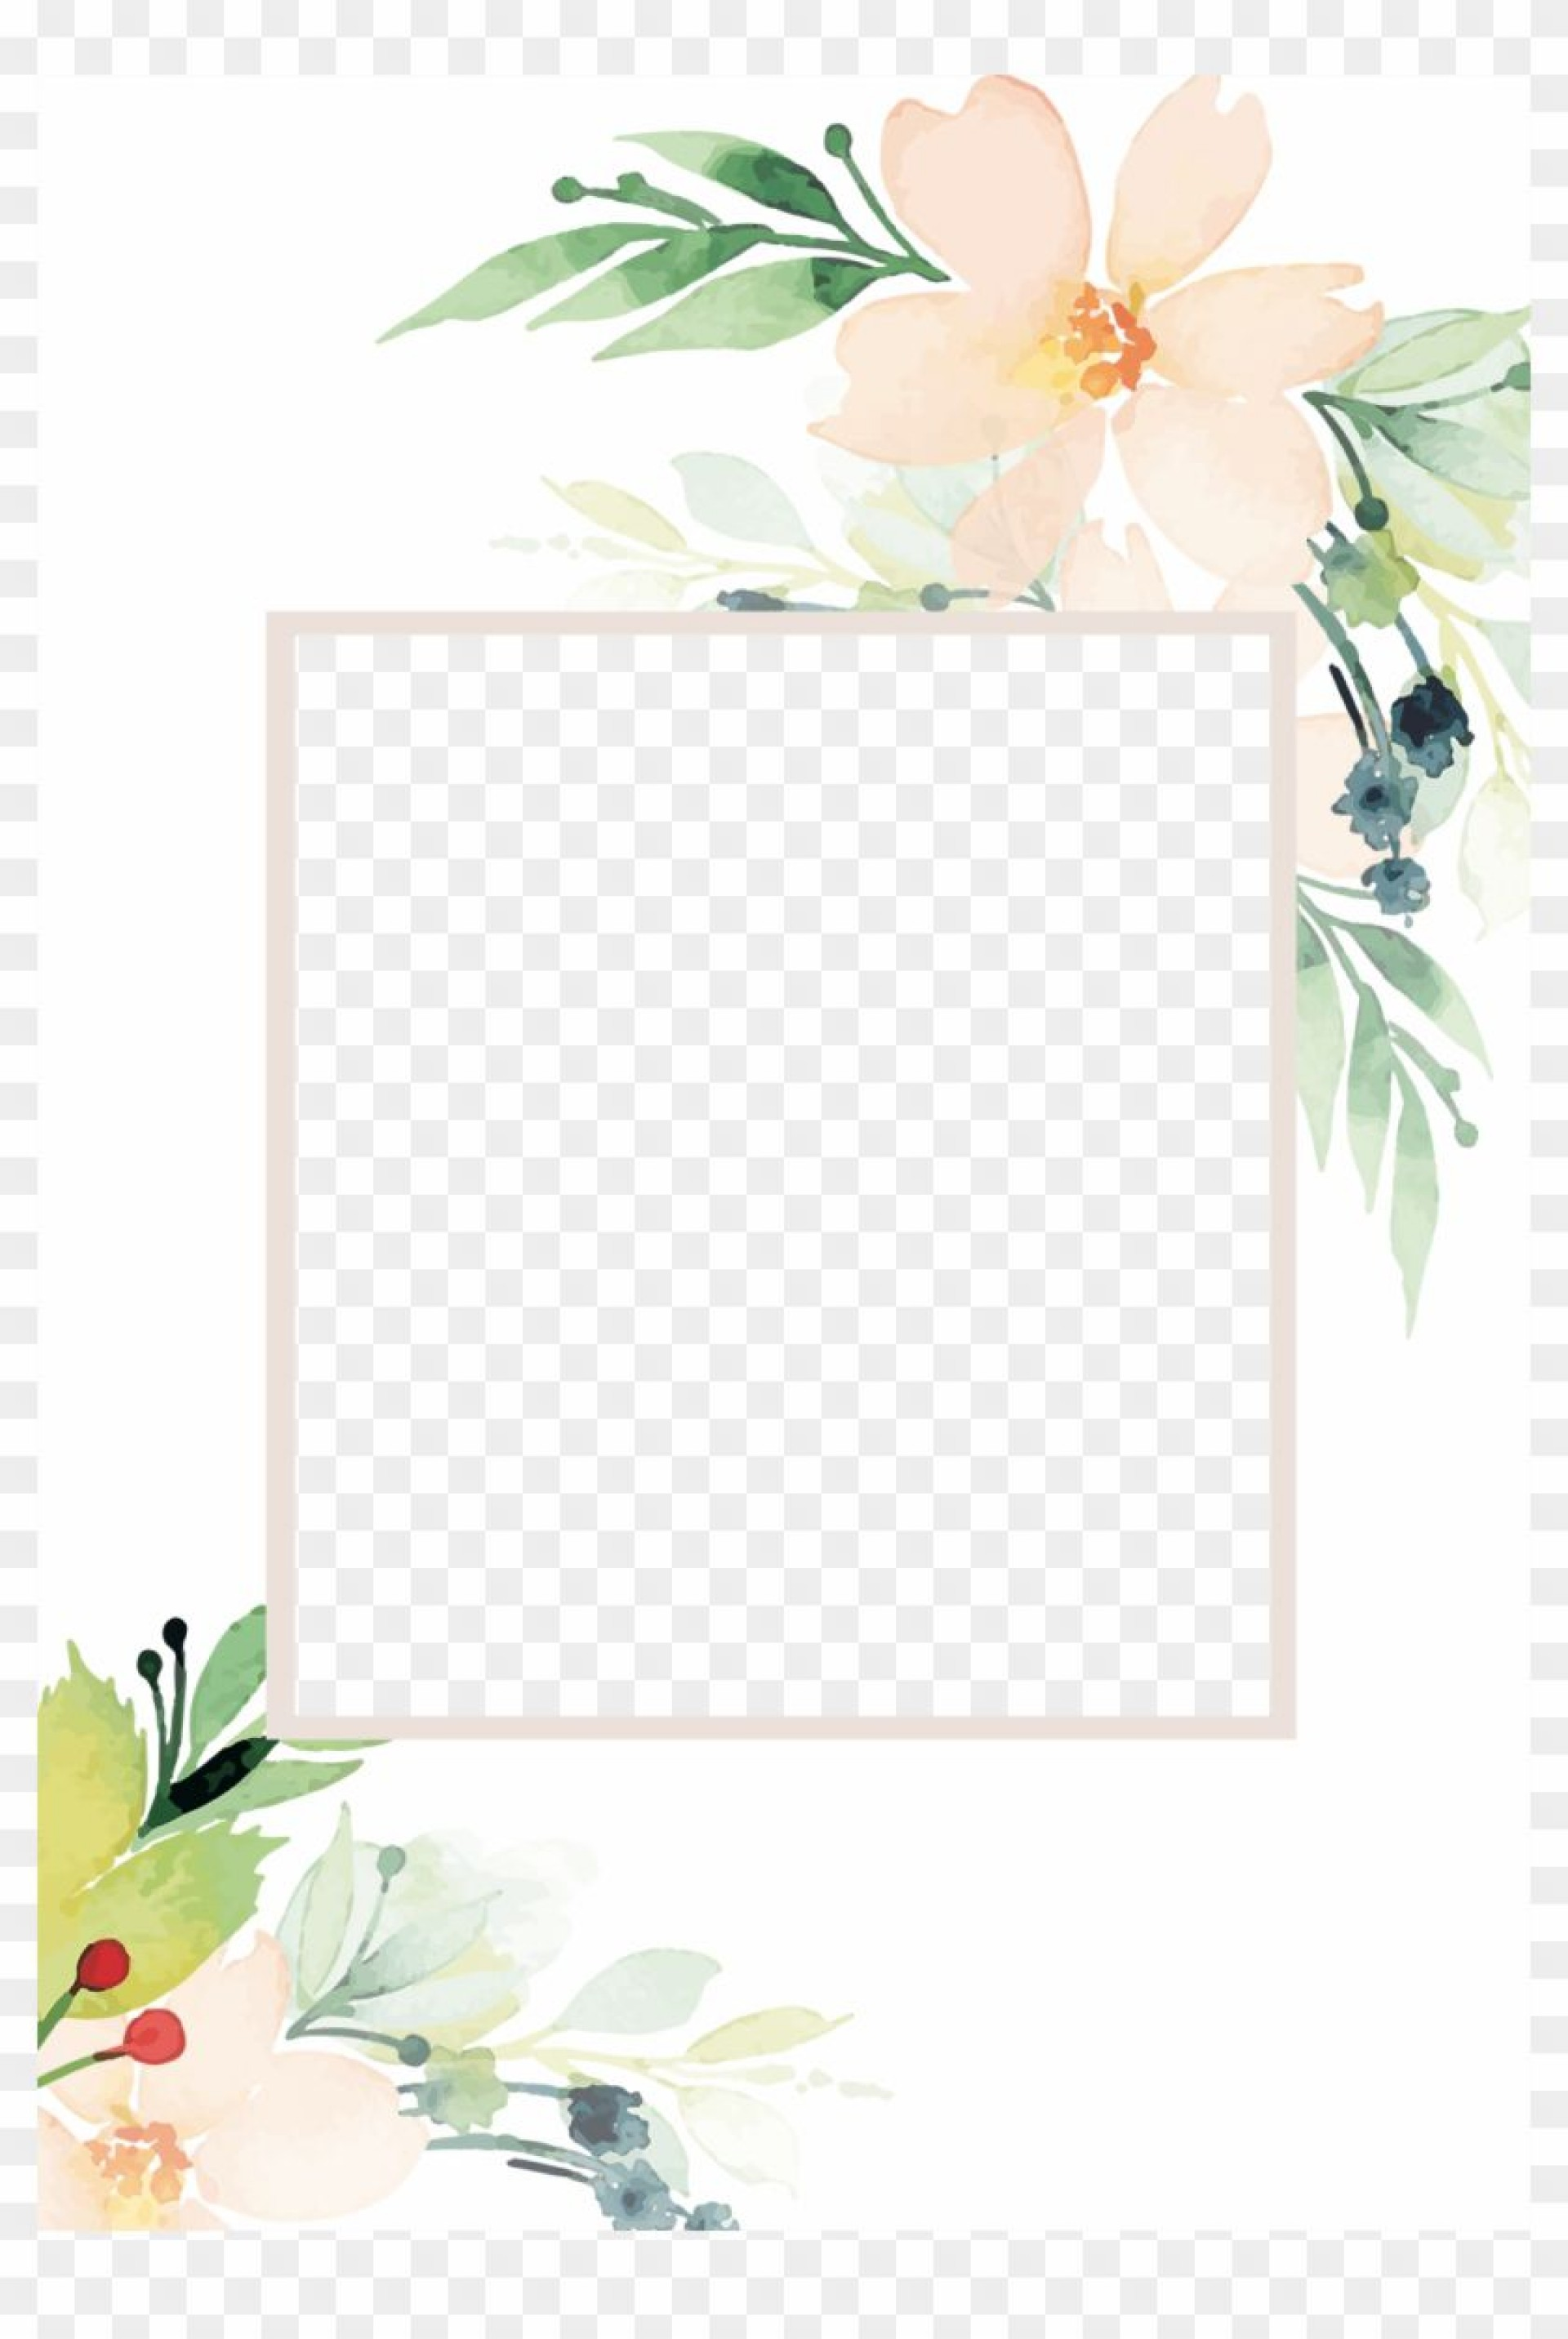 003 Surprising In Loving Memory Template High Resolution  Templates Word1920